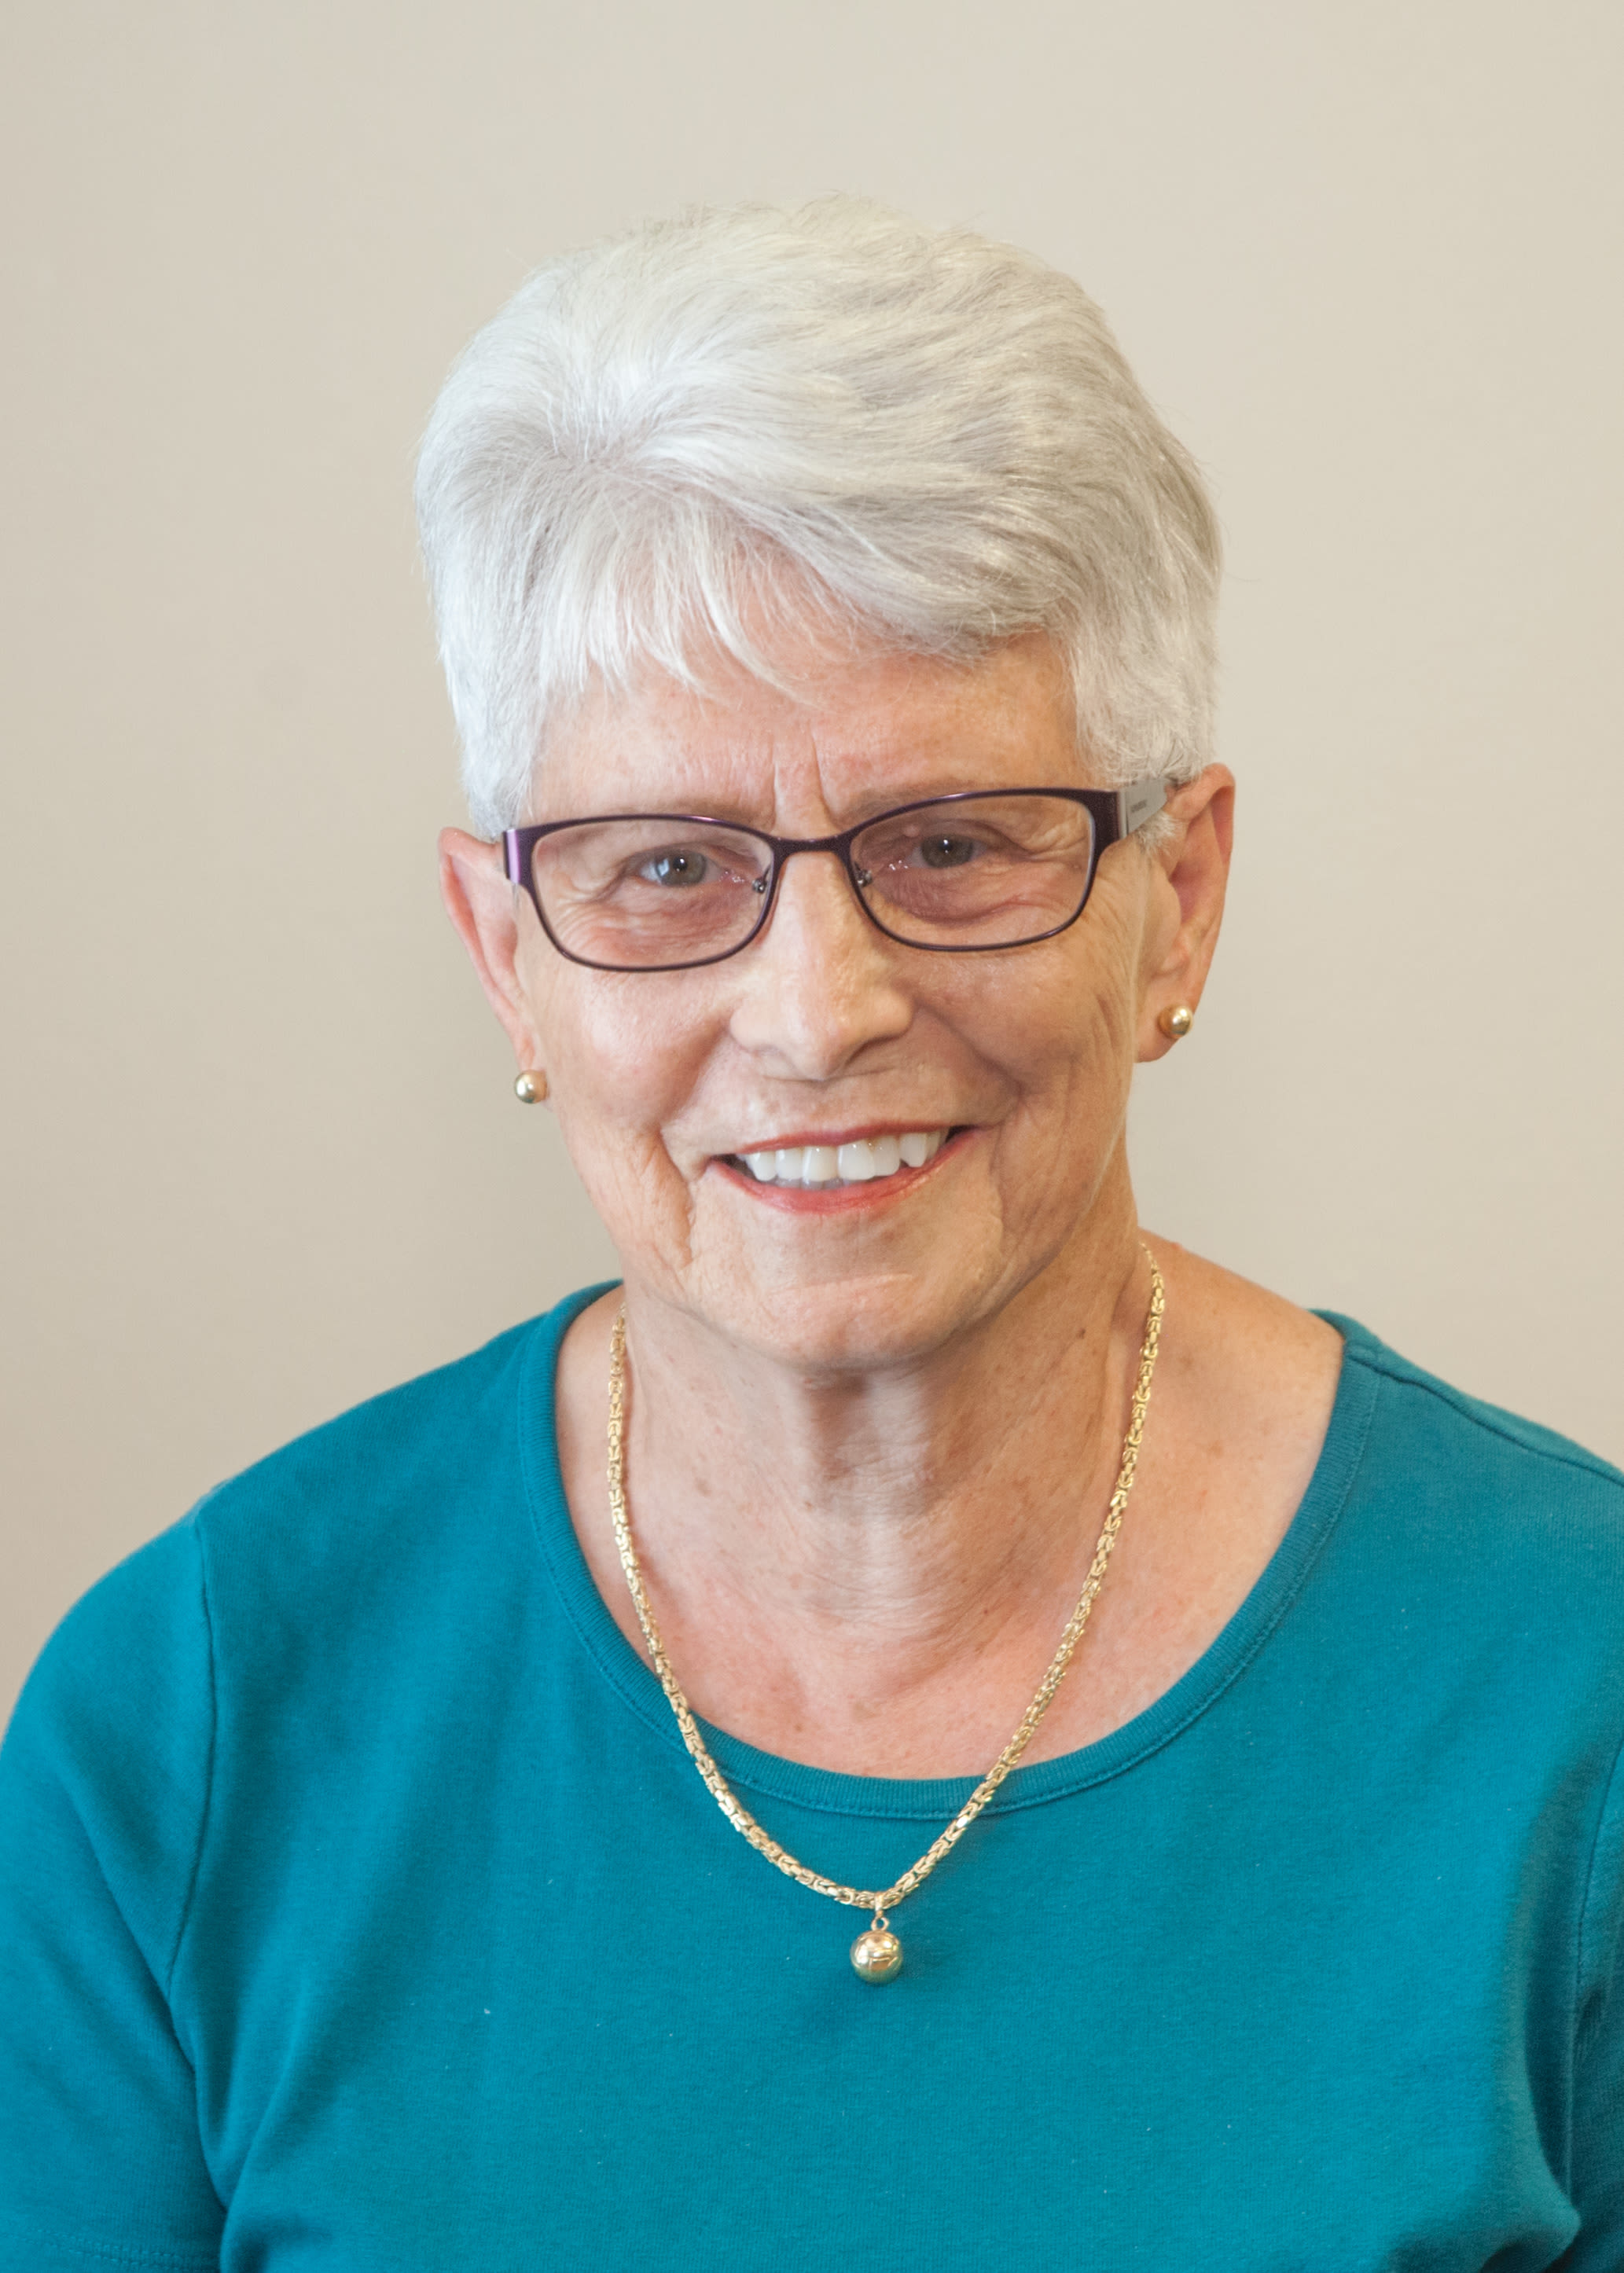 board member for Mountain Meadows Senior Living Campus